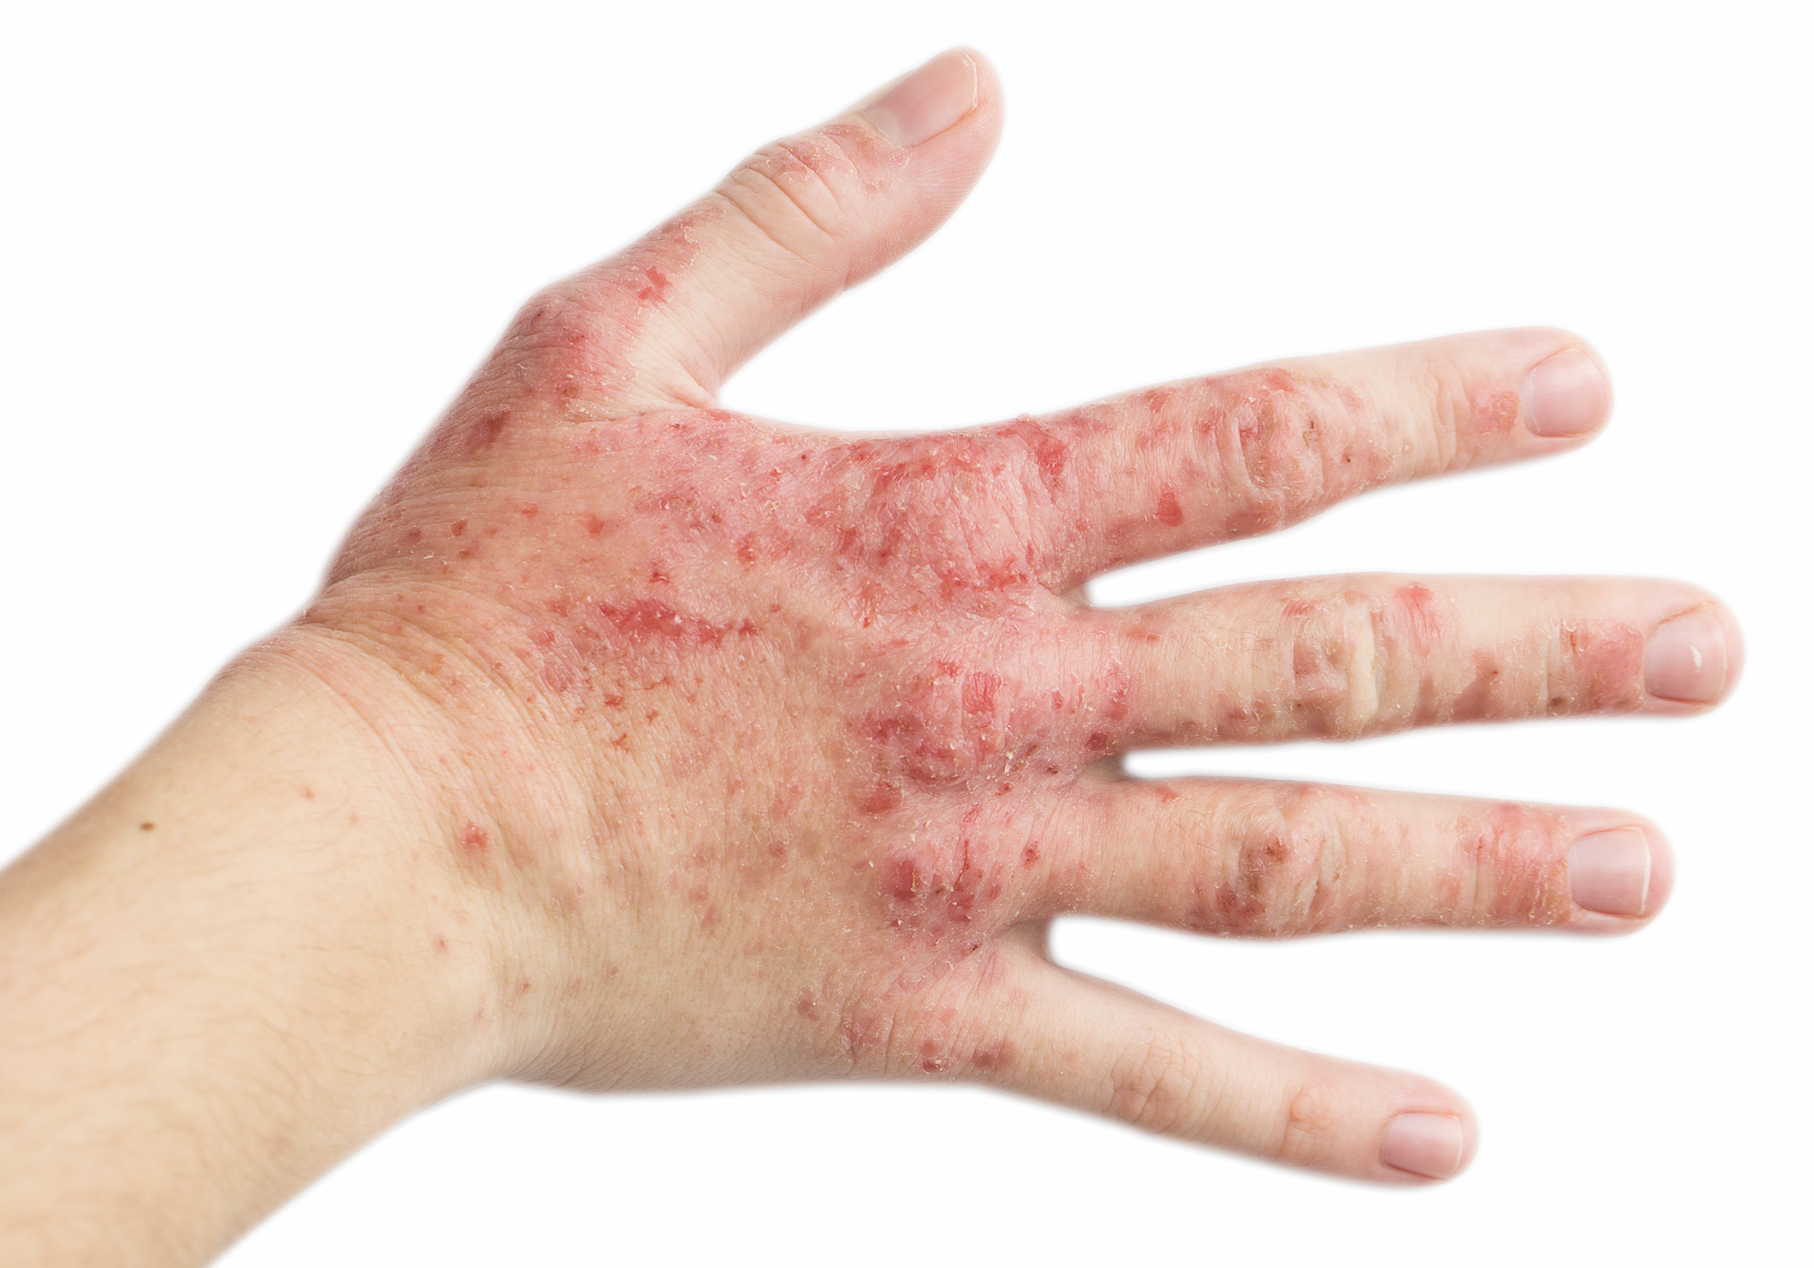 Exploring the Hand Eczema and Atopic Dermatitis Link   The ...